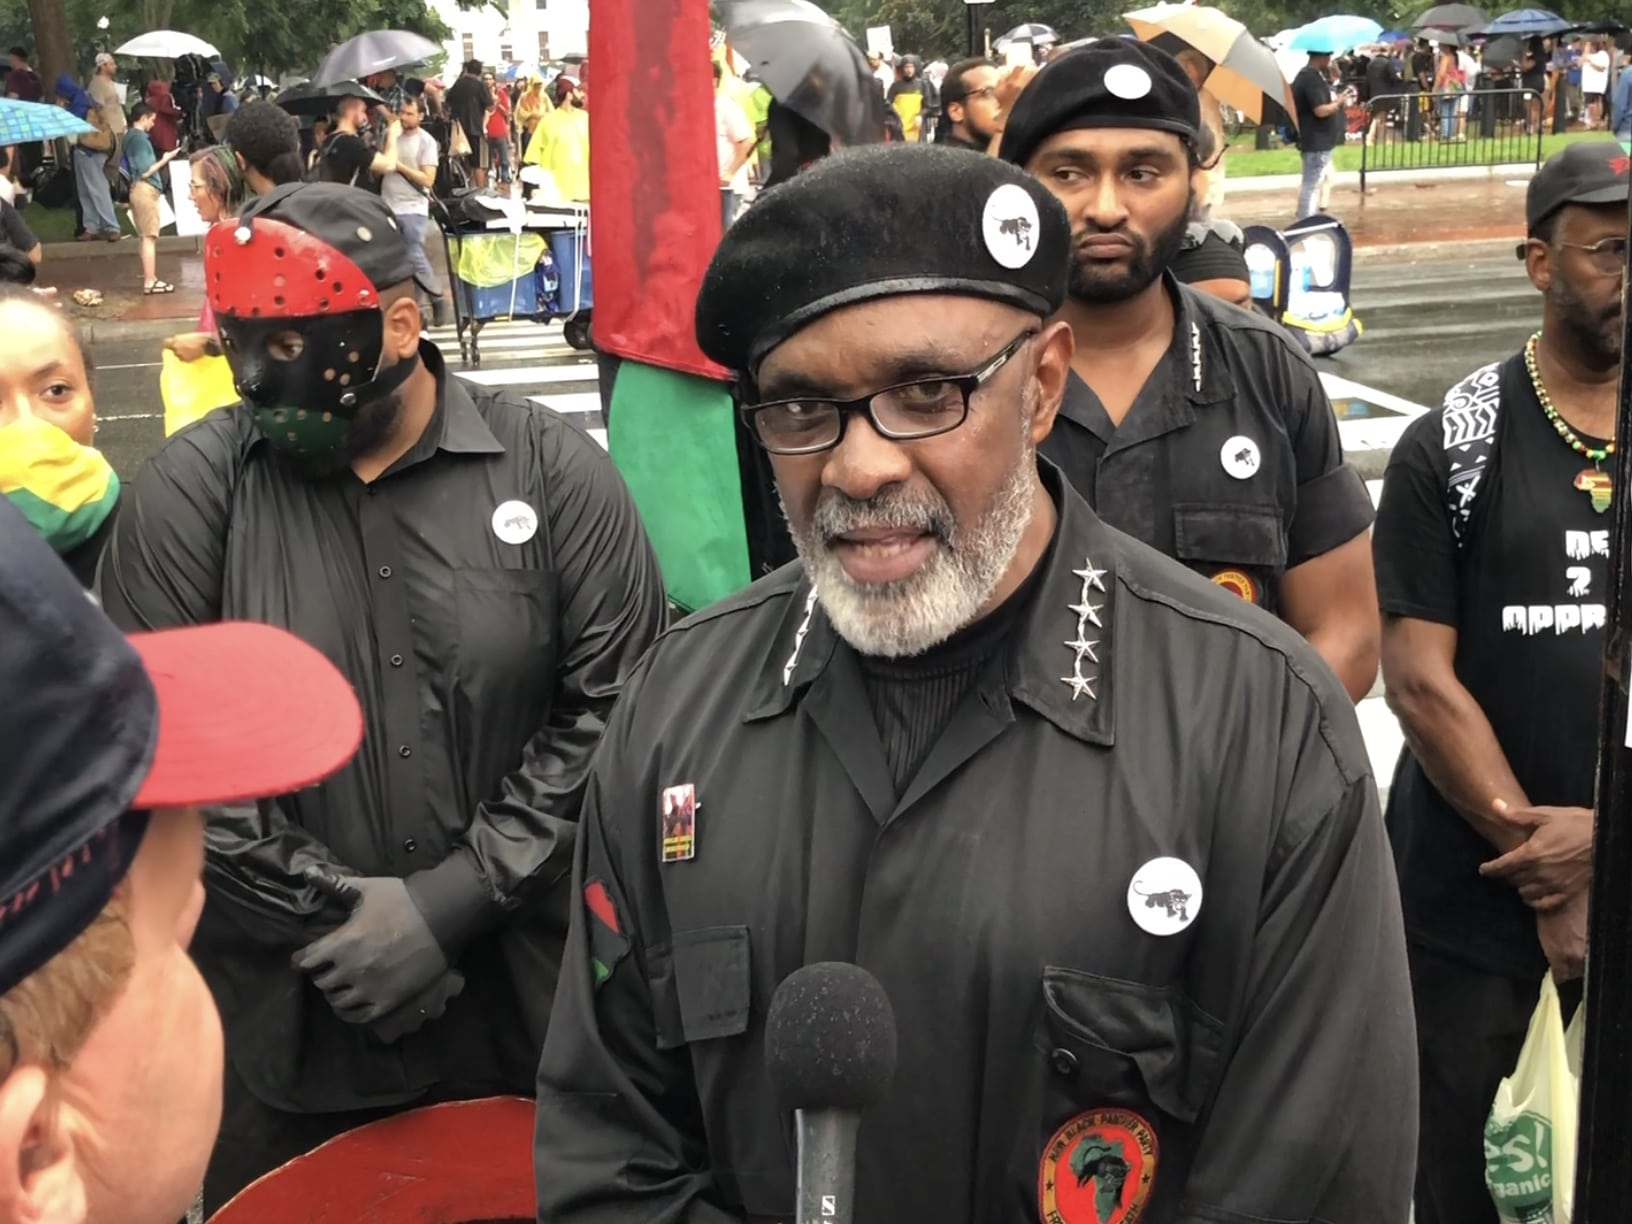 Image [Imam Akbar, Former National Minister Of Justice at The New Black Panther Party, came to protest at the Unite the Right 2 rally, Washington, D.C., August 12, 2018][Photo: Anthony A. LoPresti / Lima Charlie News]